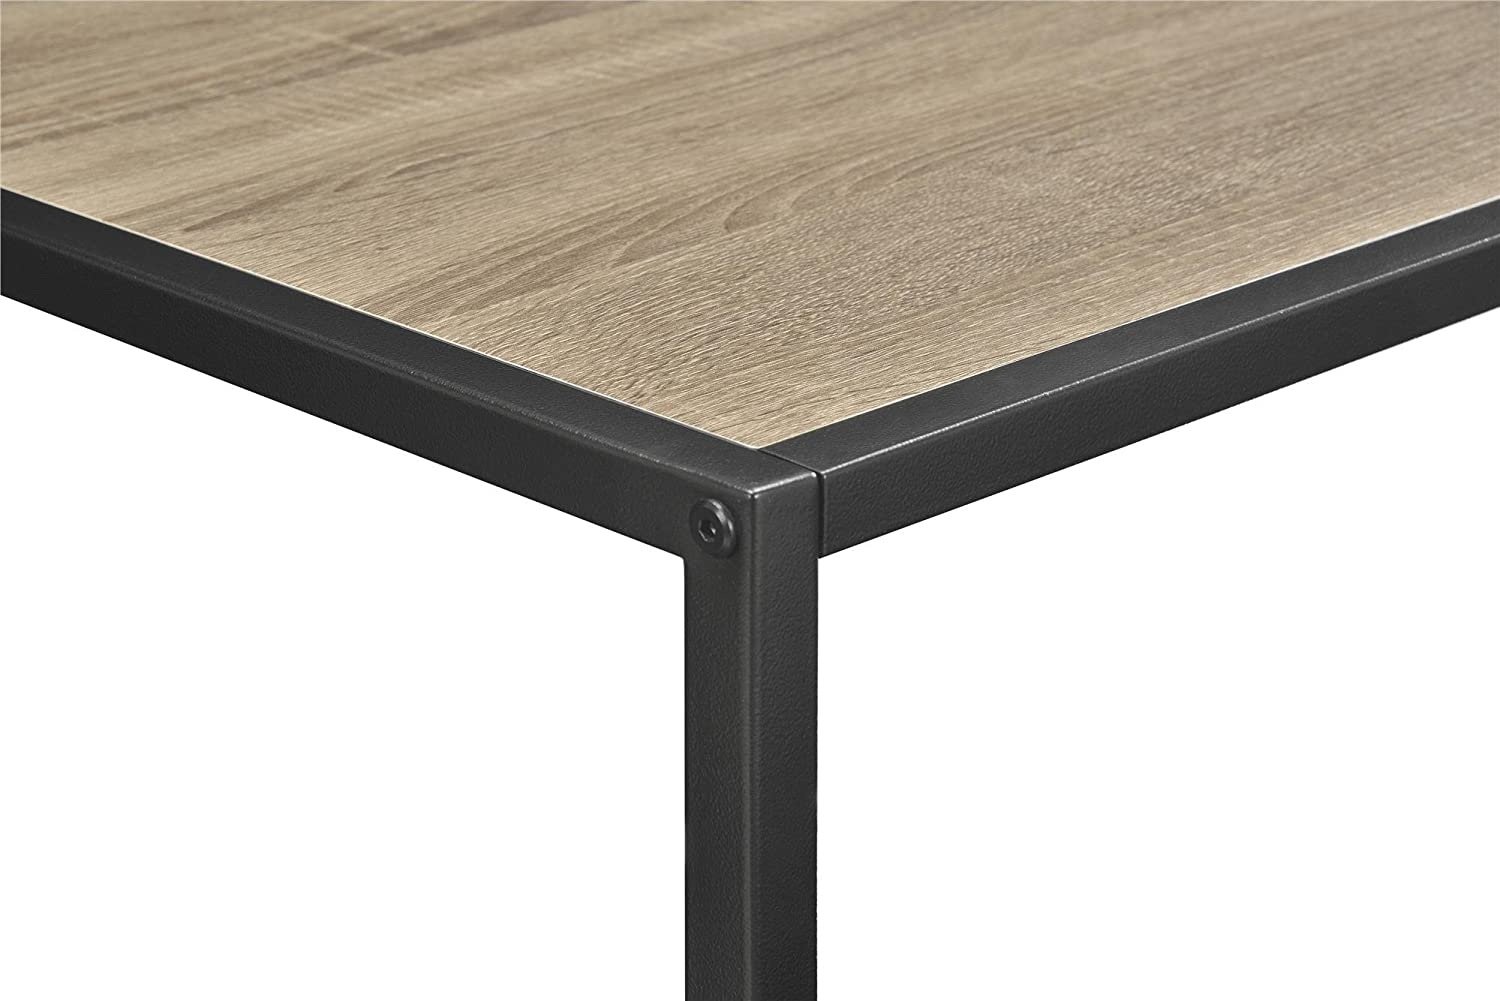 Steel Coffee Table Frame Amazoncom Altra Canton Coffee Table With Metal Frame Sonoma Oak